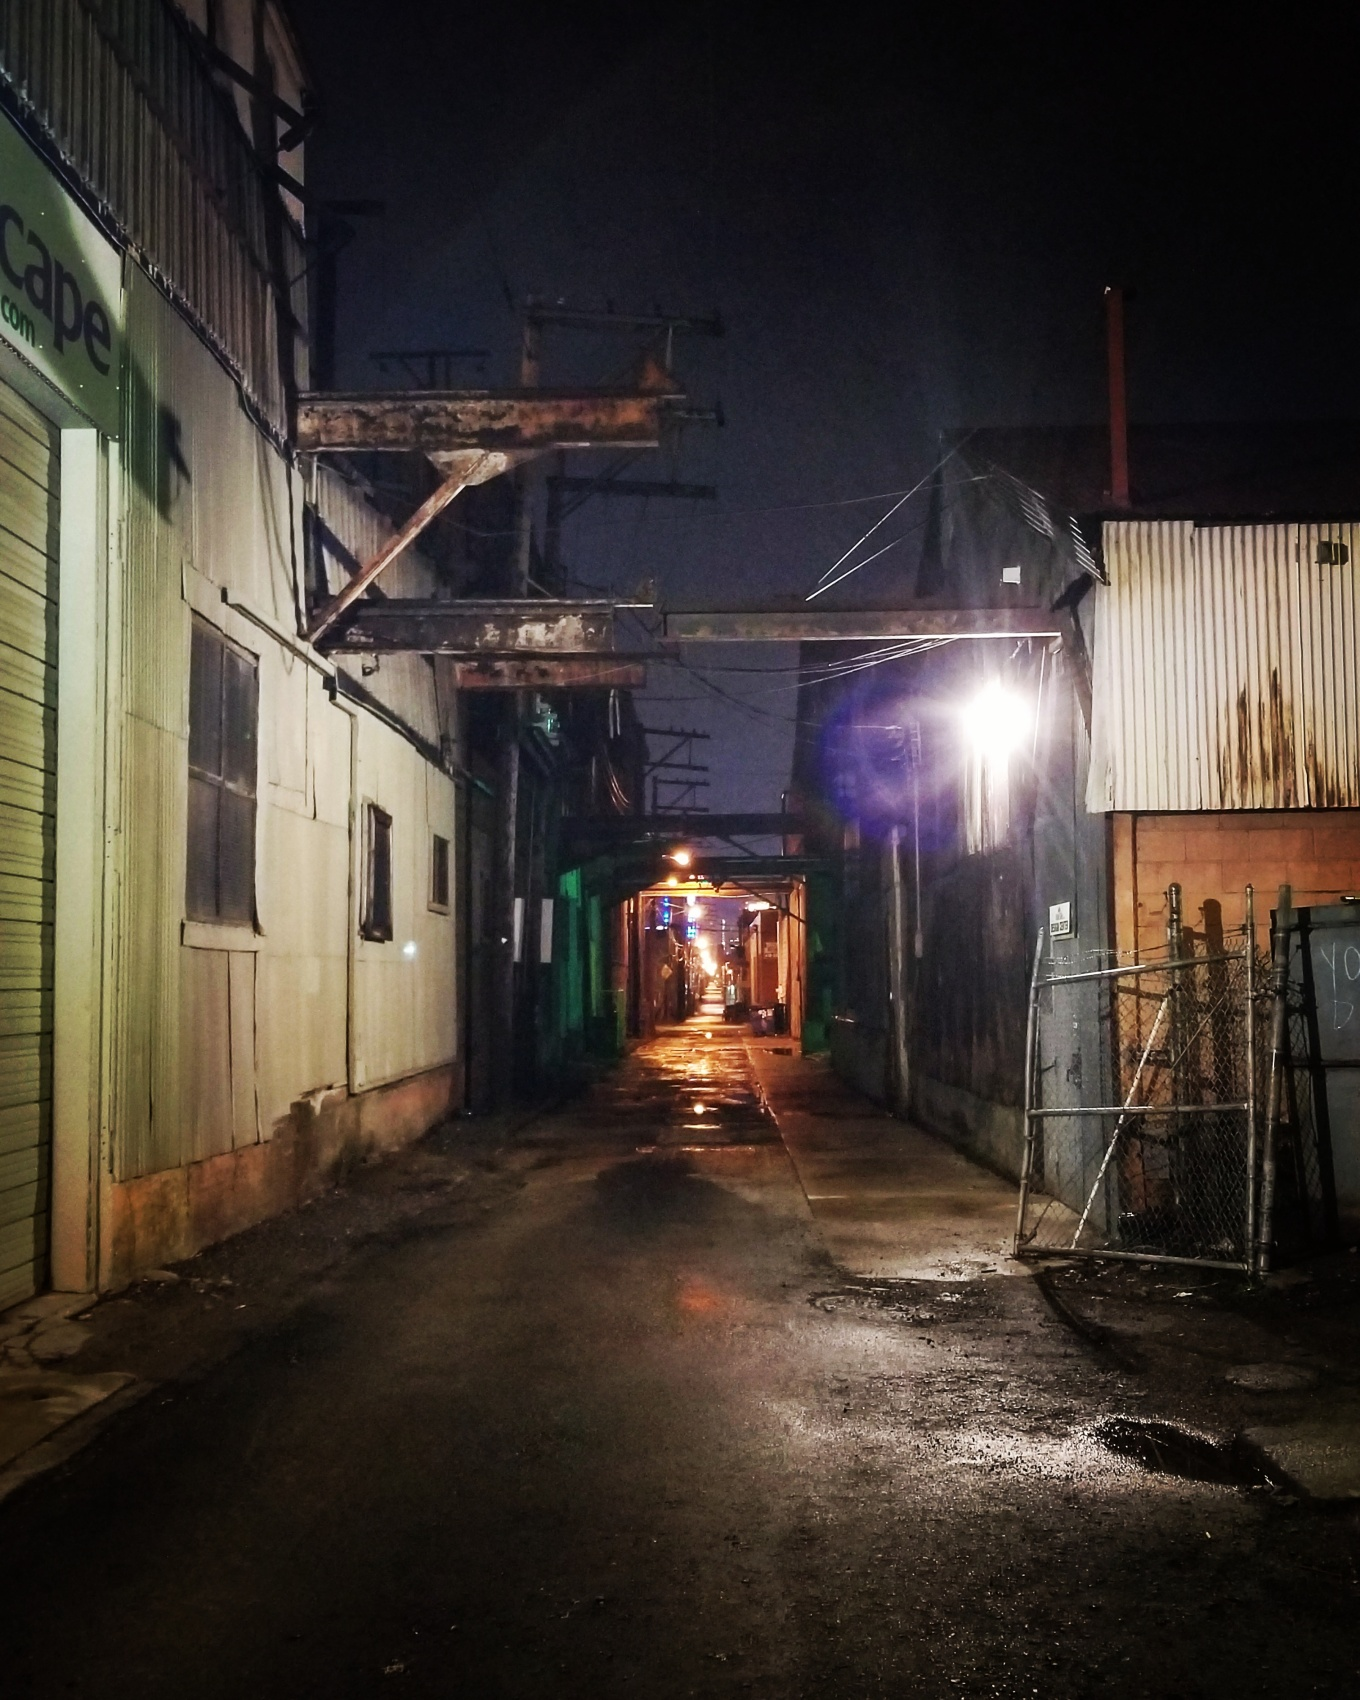 A view down a back alley in Pittsburgh's Strip District